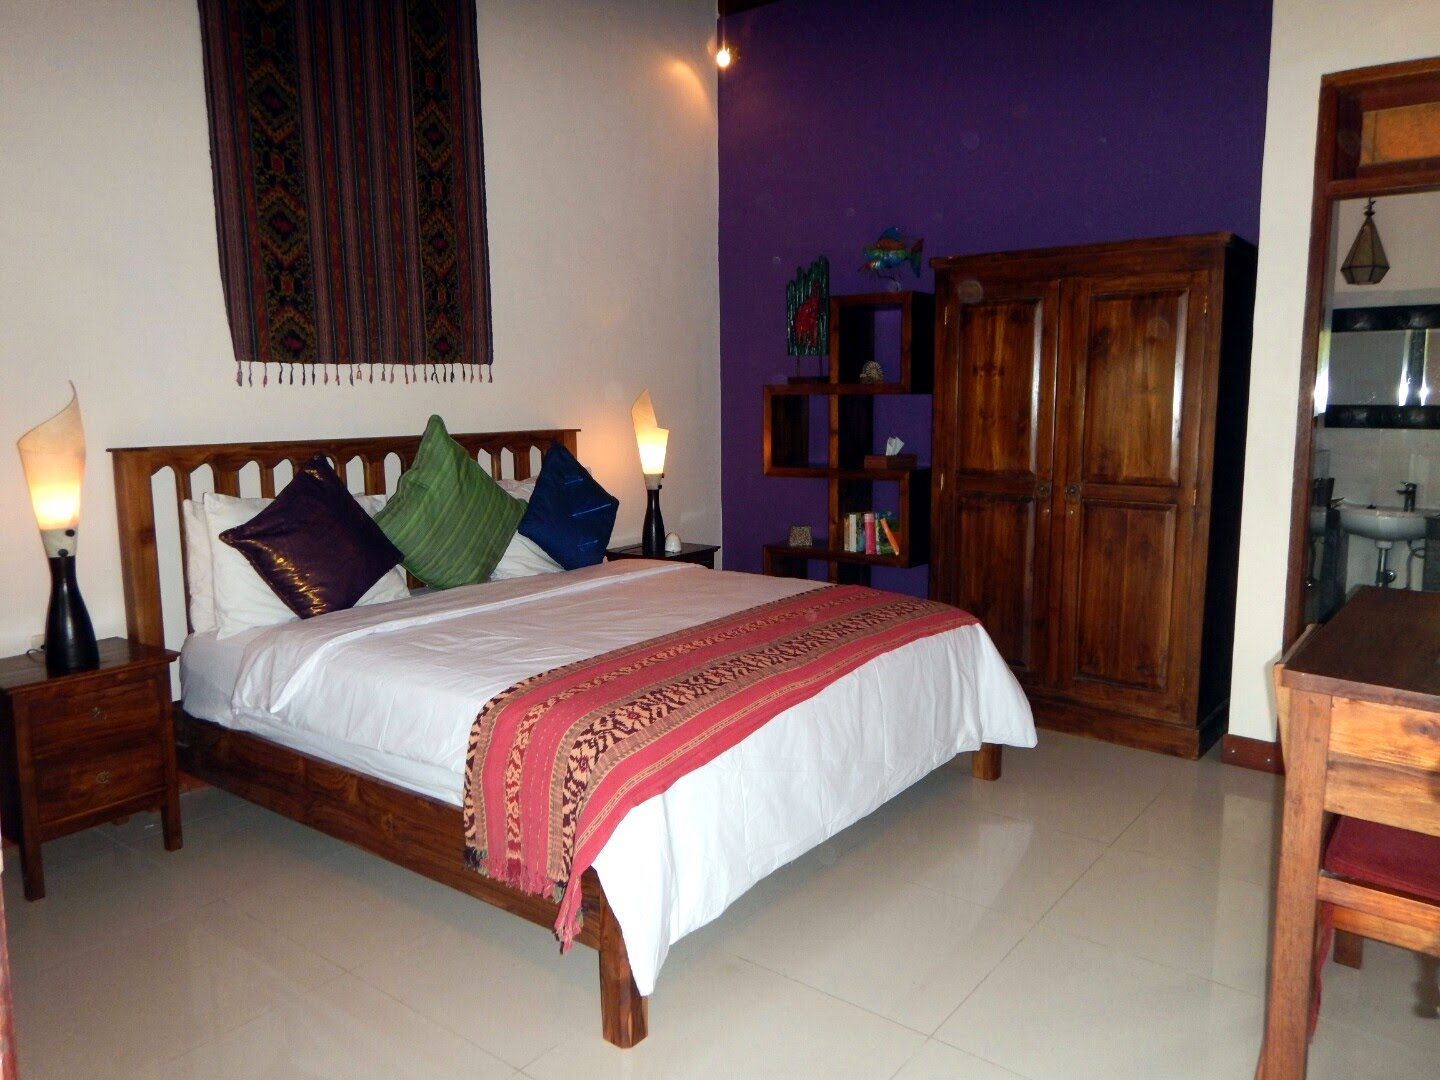 Popular Puri Sayang King and Puri Sayang Queen are superior rooms featuring teak furniture with new granite floors Teak wardrobe and desk pletes the room